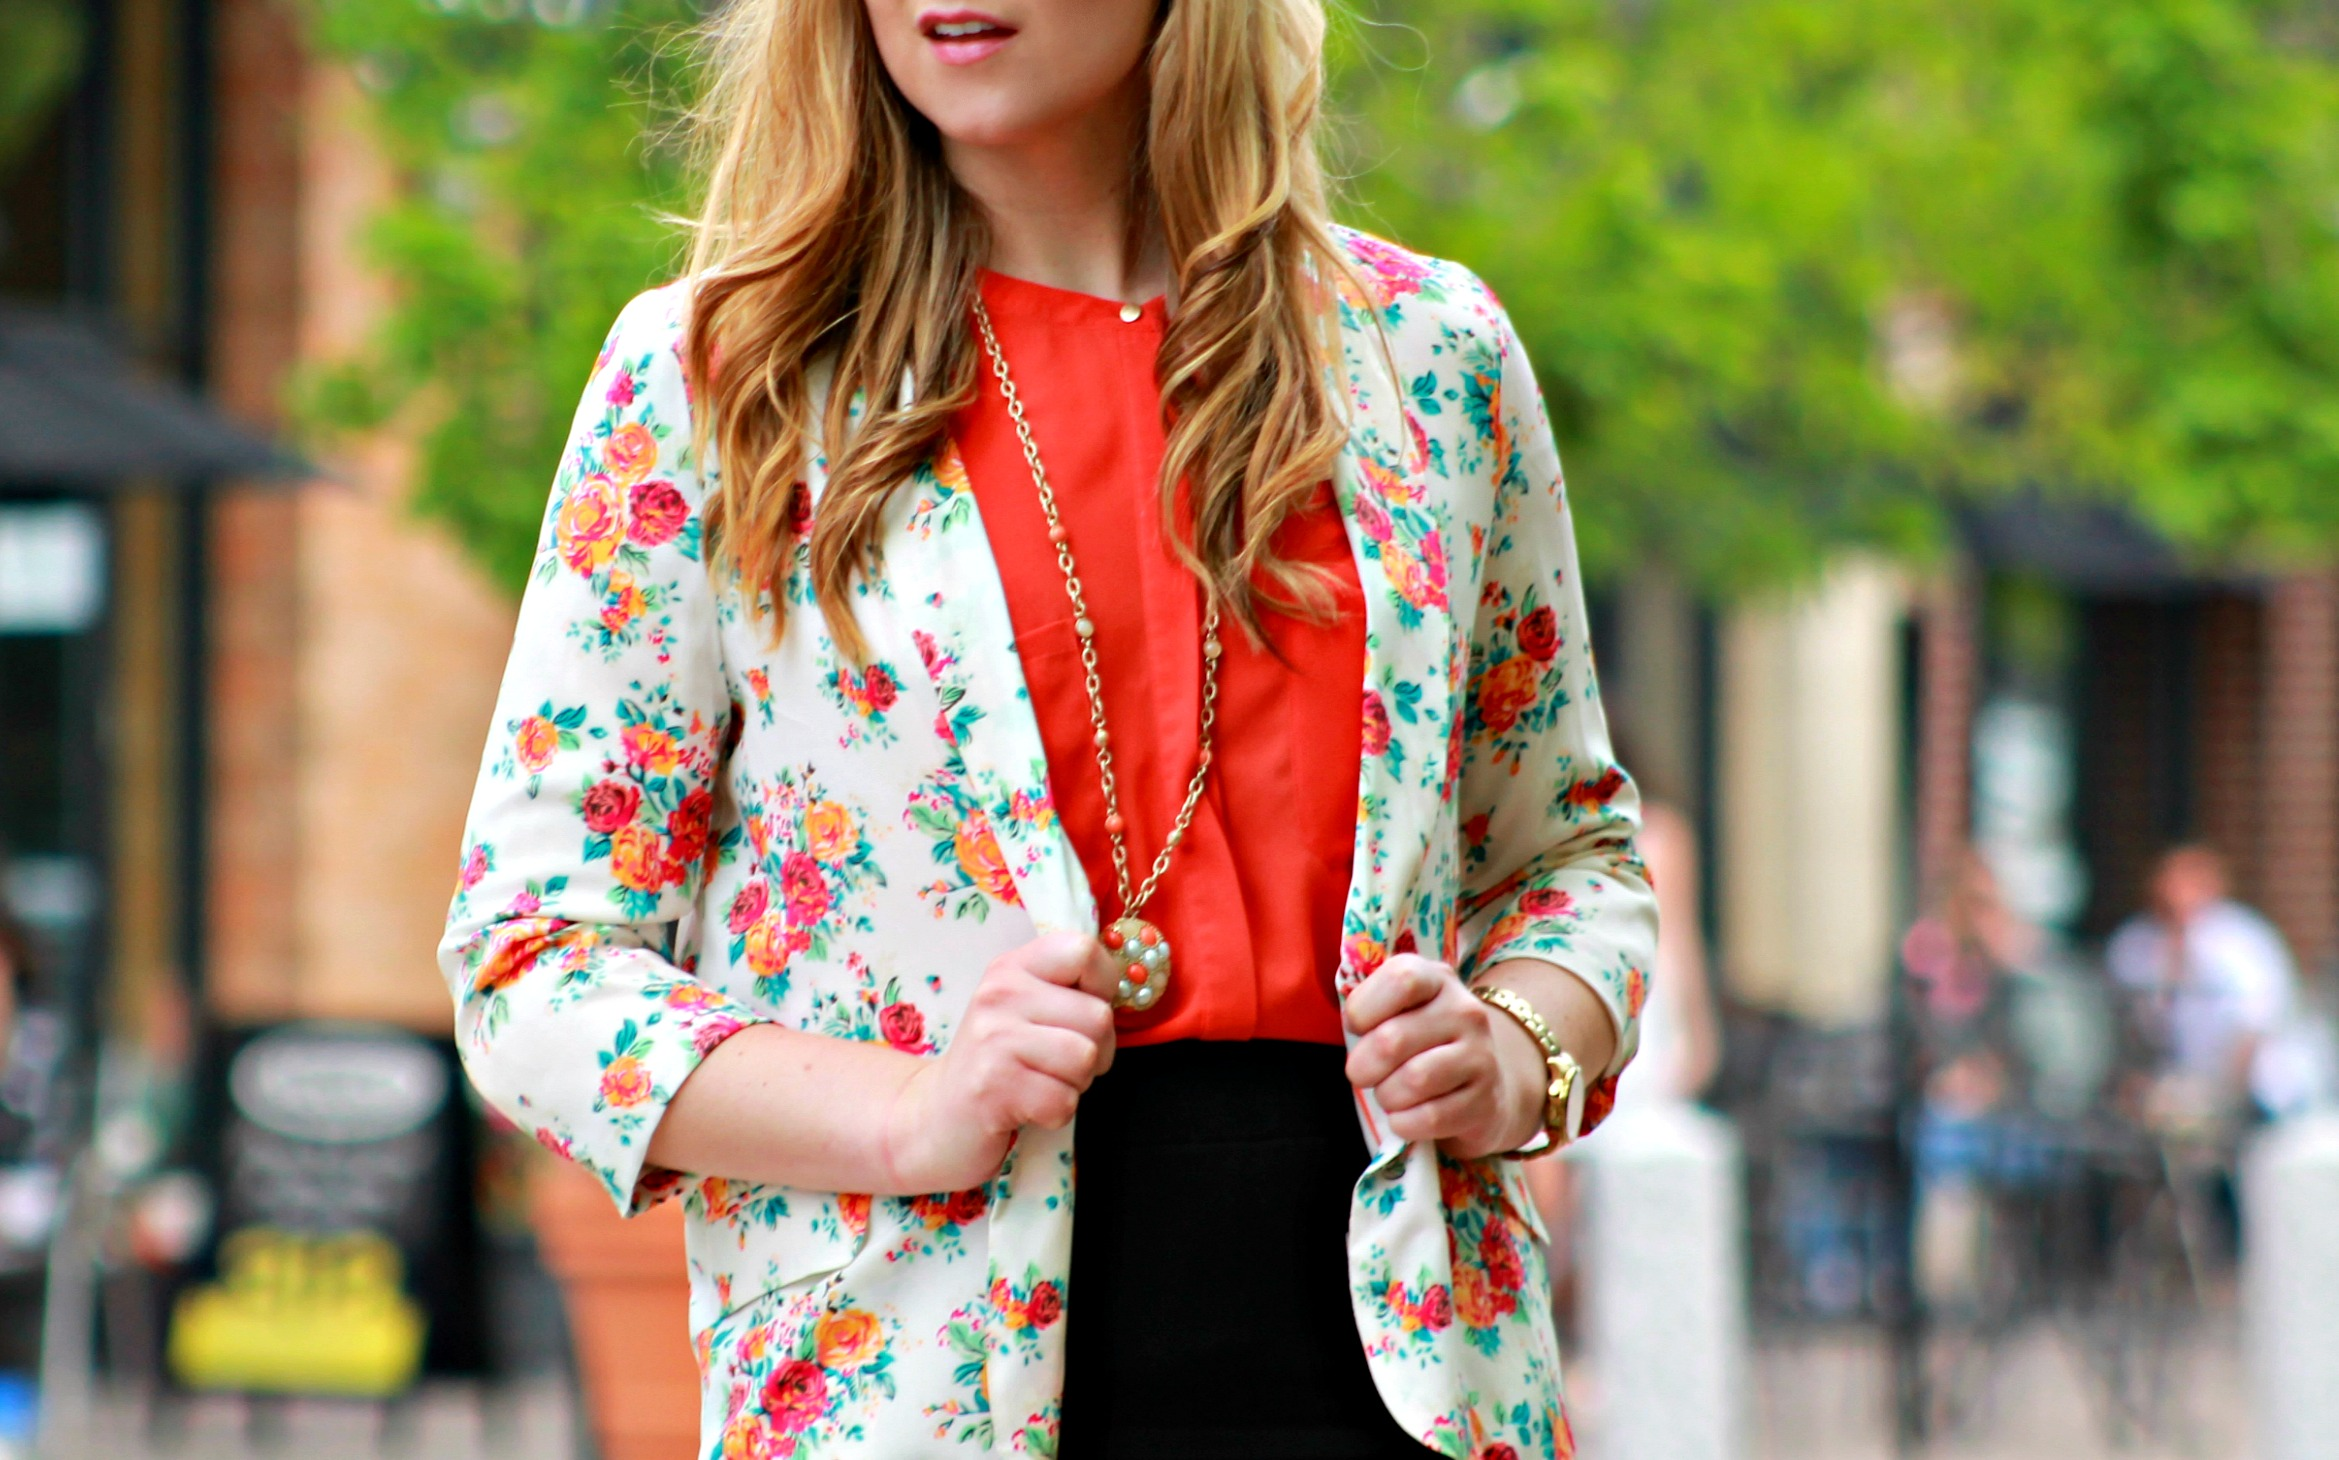 Floral Blazer + Long Gold Chain Necklace